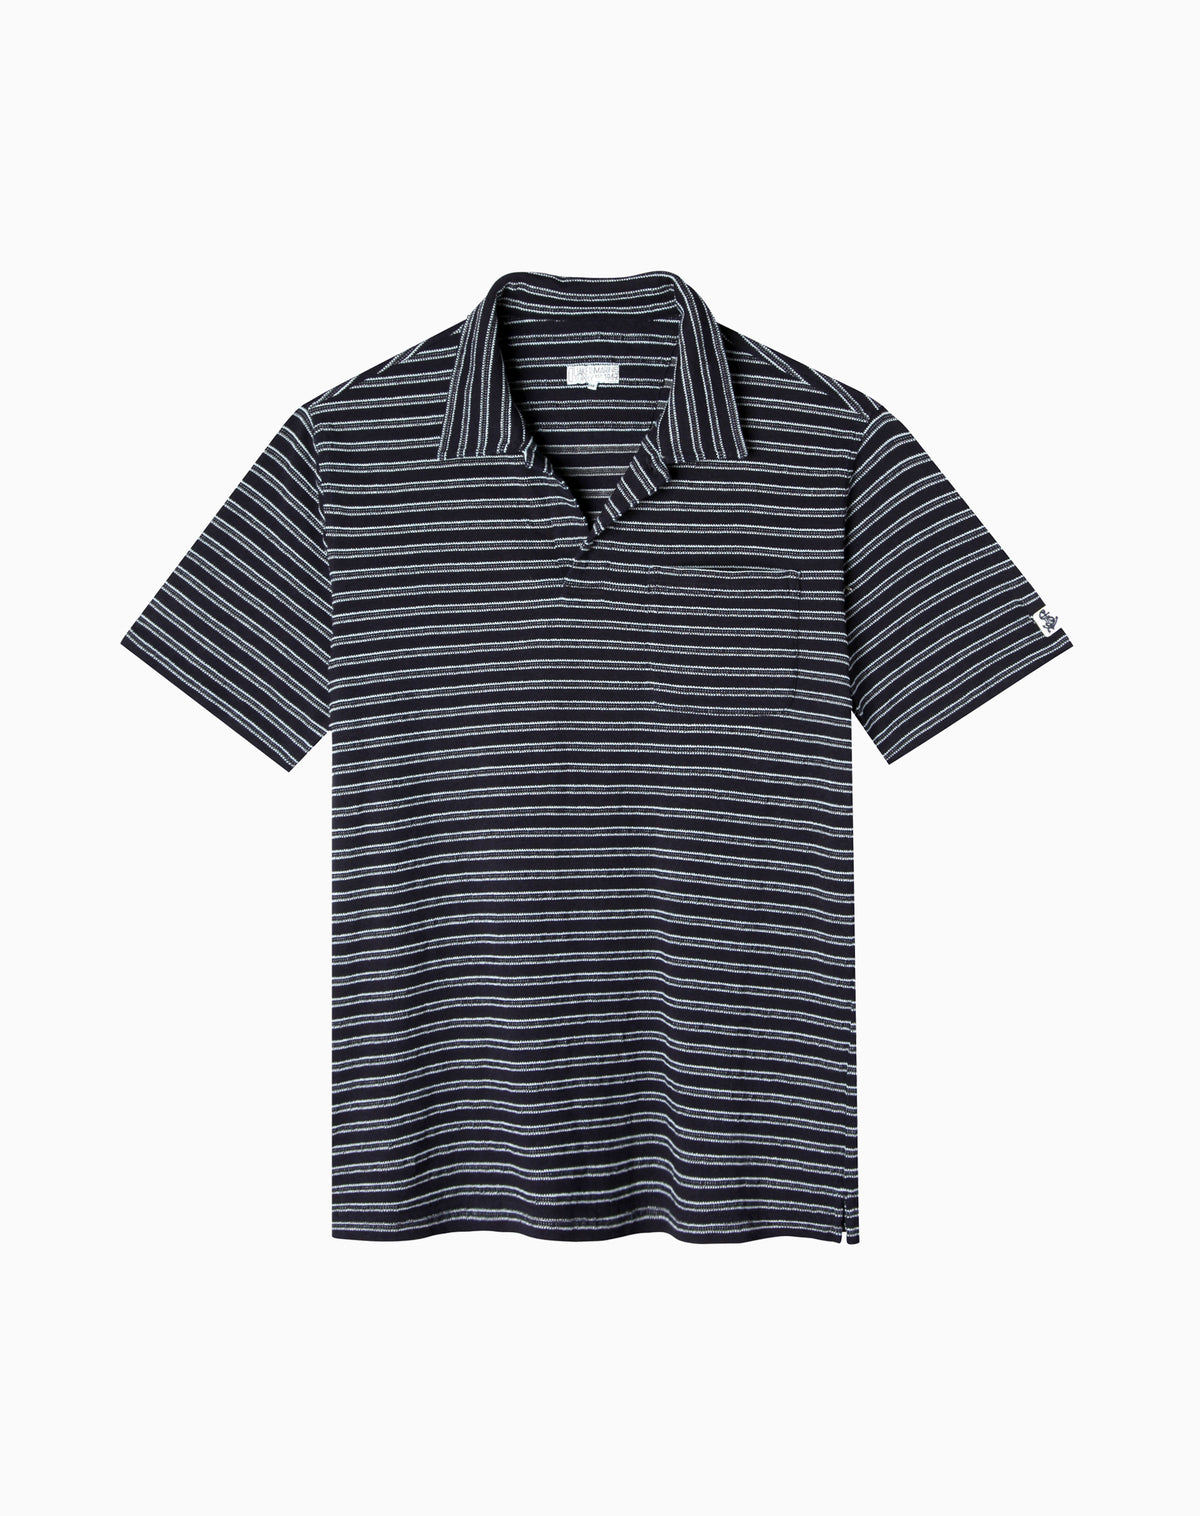 Indigo Jacquard Stripe Polo in Dark Wash